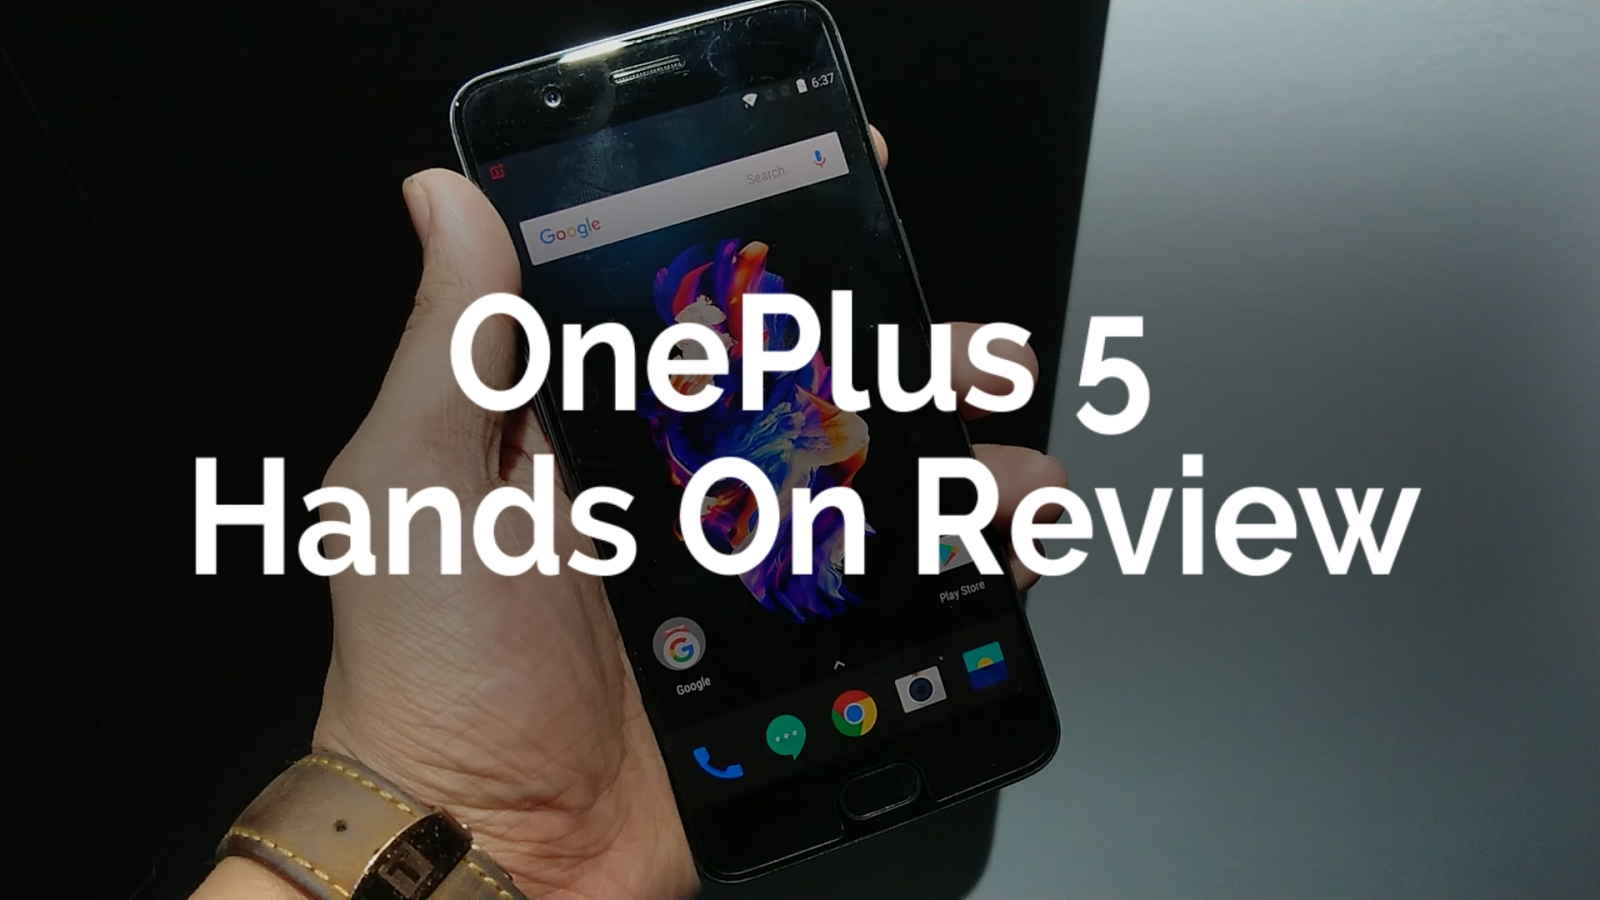 oneplus-5-hands-on-review